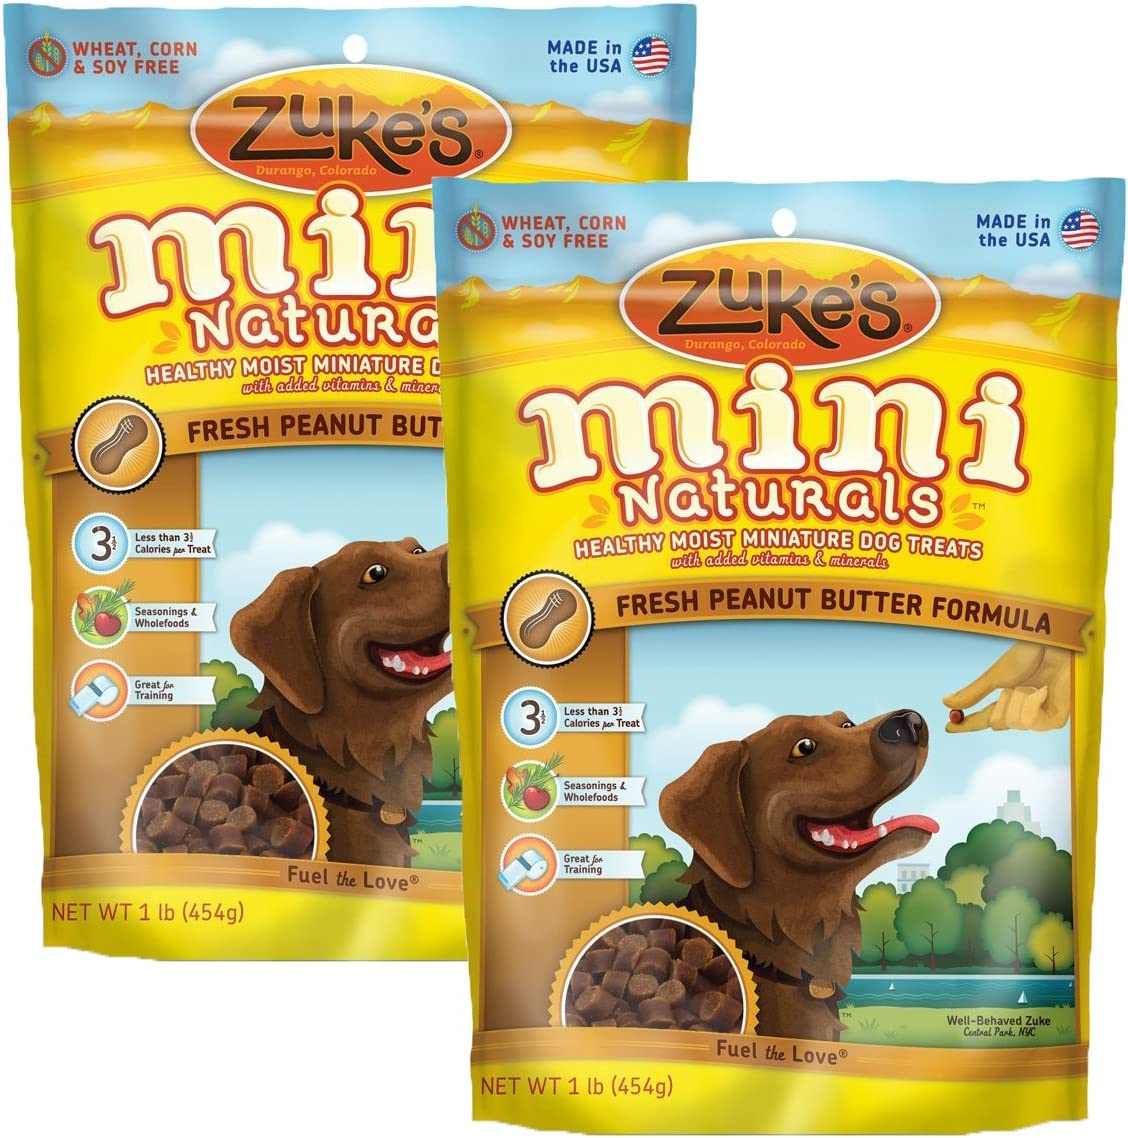 Zuke s Mini Naturals Savory Salmon Recipe Dog Treats Peanut Butter, 16 oz. Pouch – 2 Pack